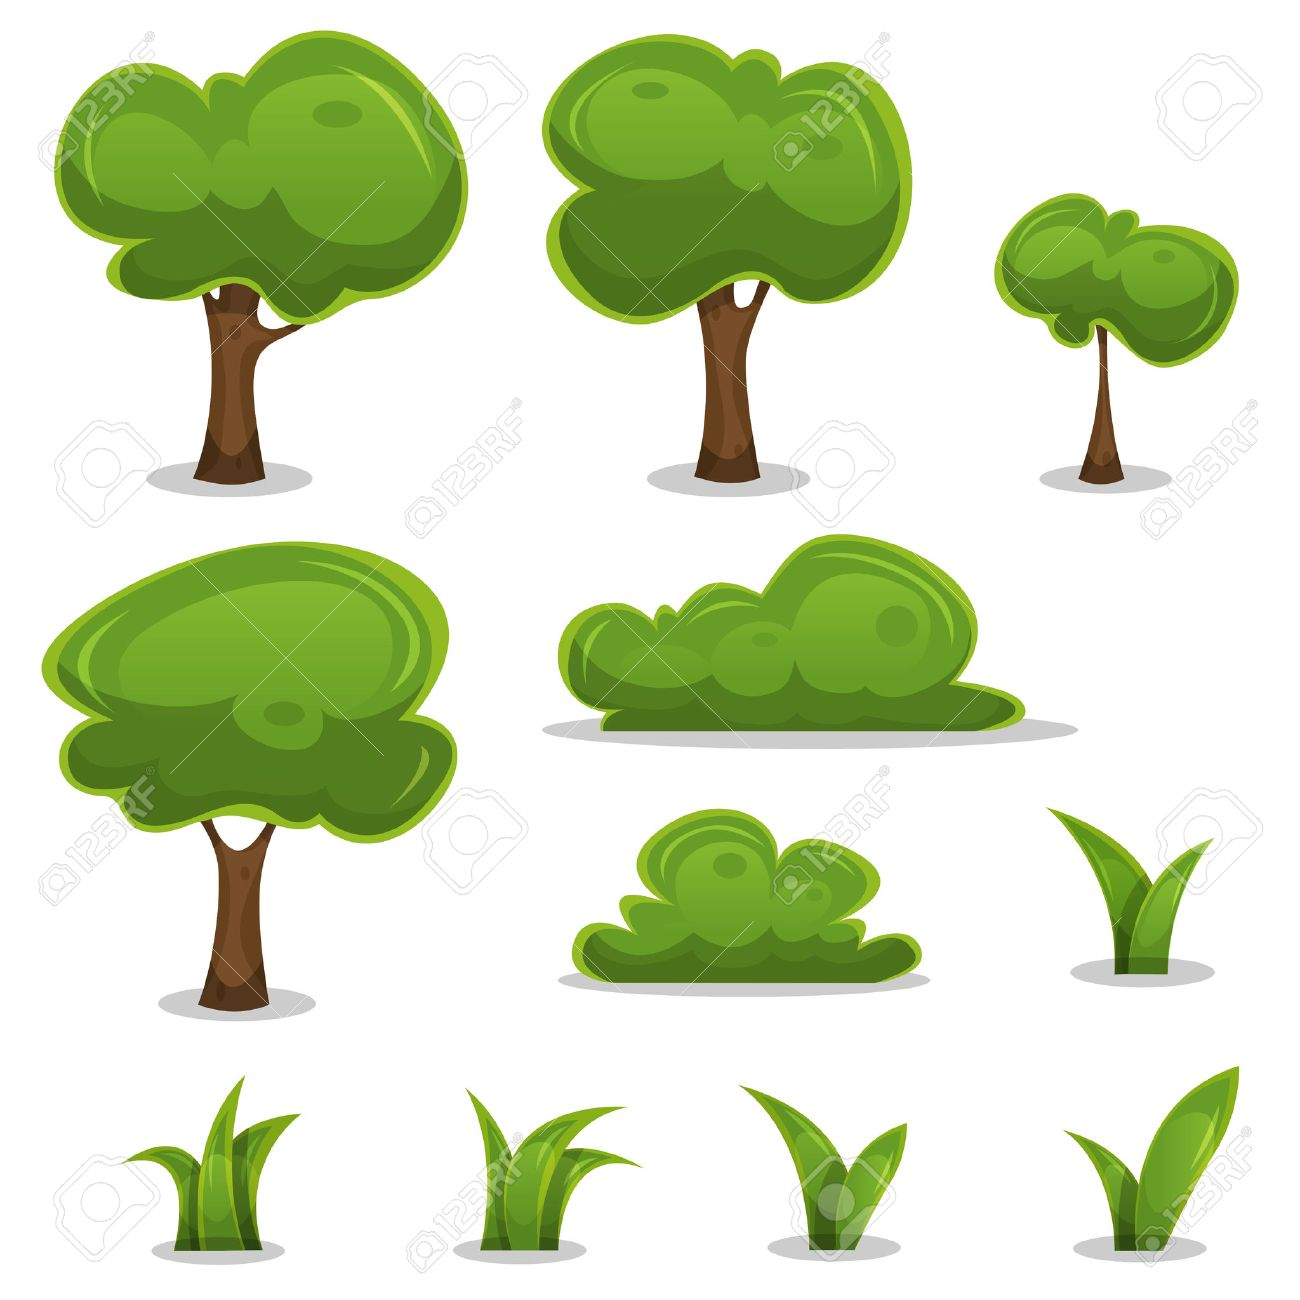 Illustration of a set of cartoon spring or summer little trees and green icons, with bush, hedges and blades of grass for ui game - 40600922